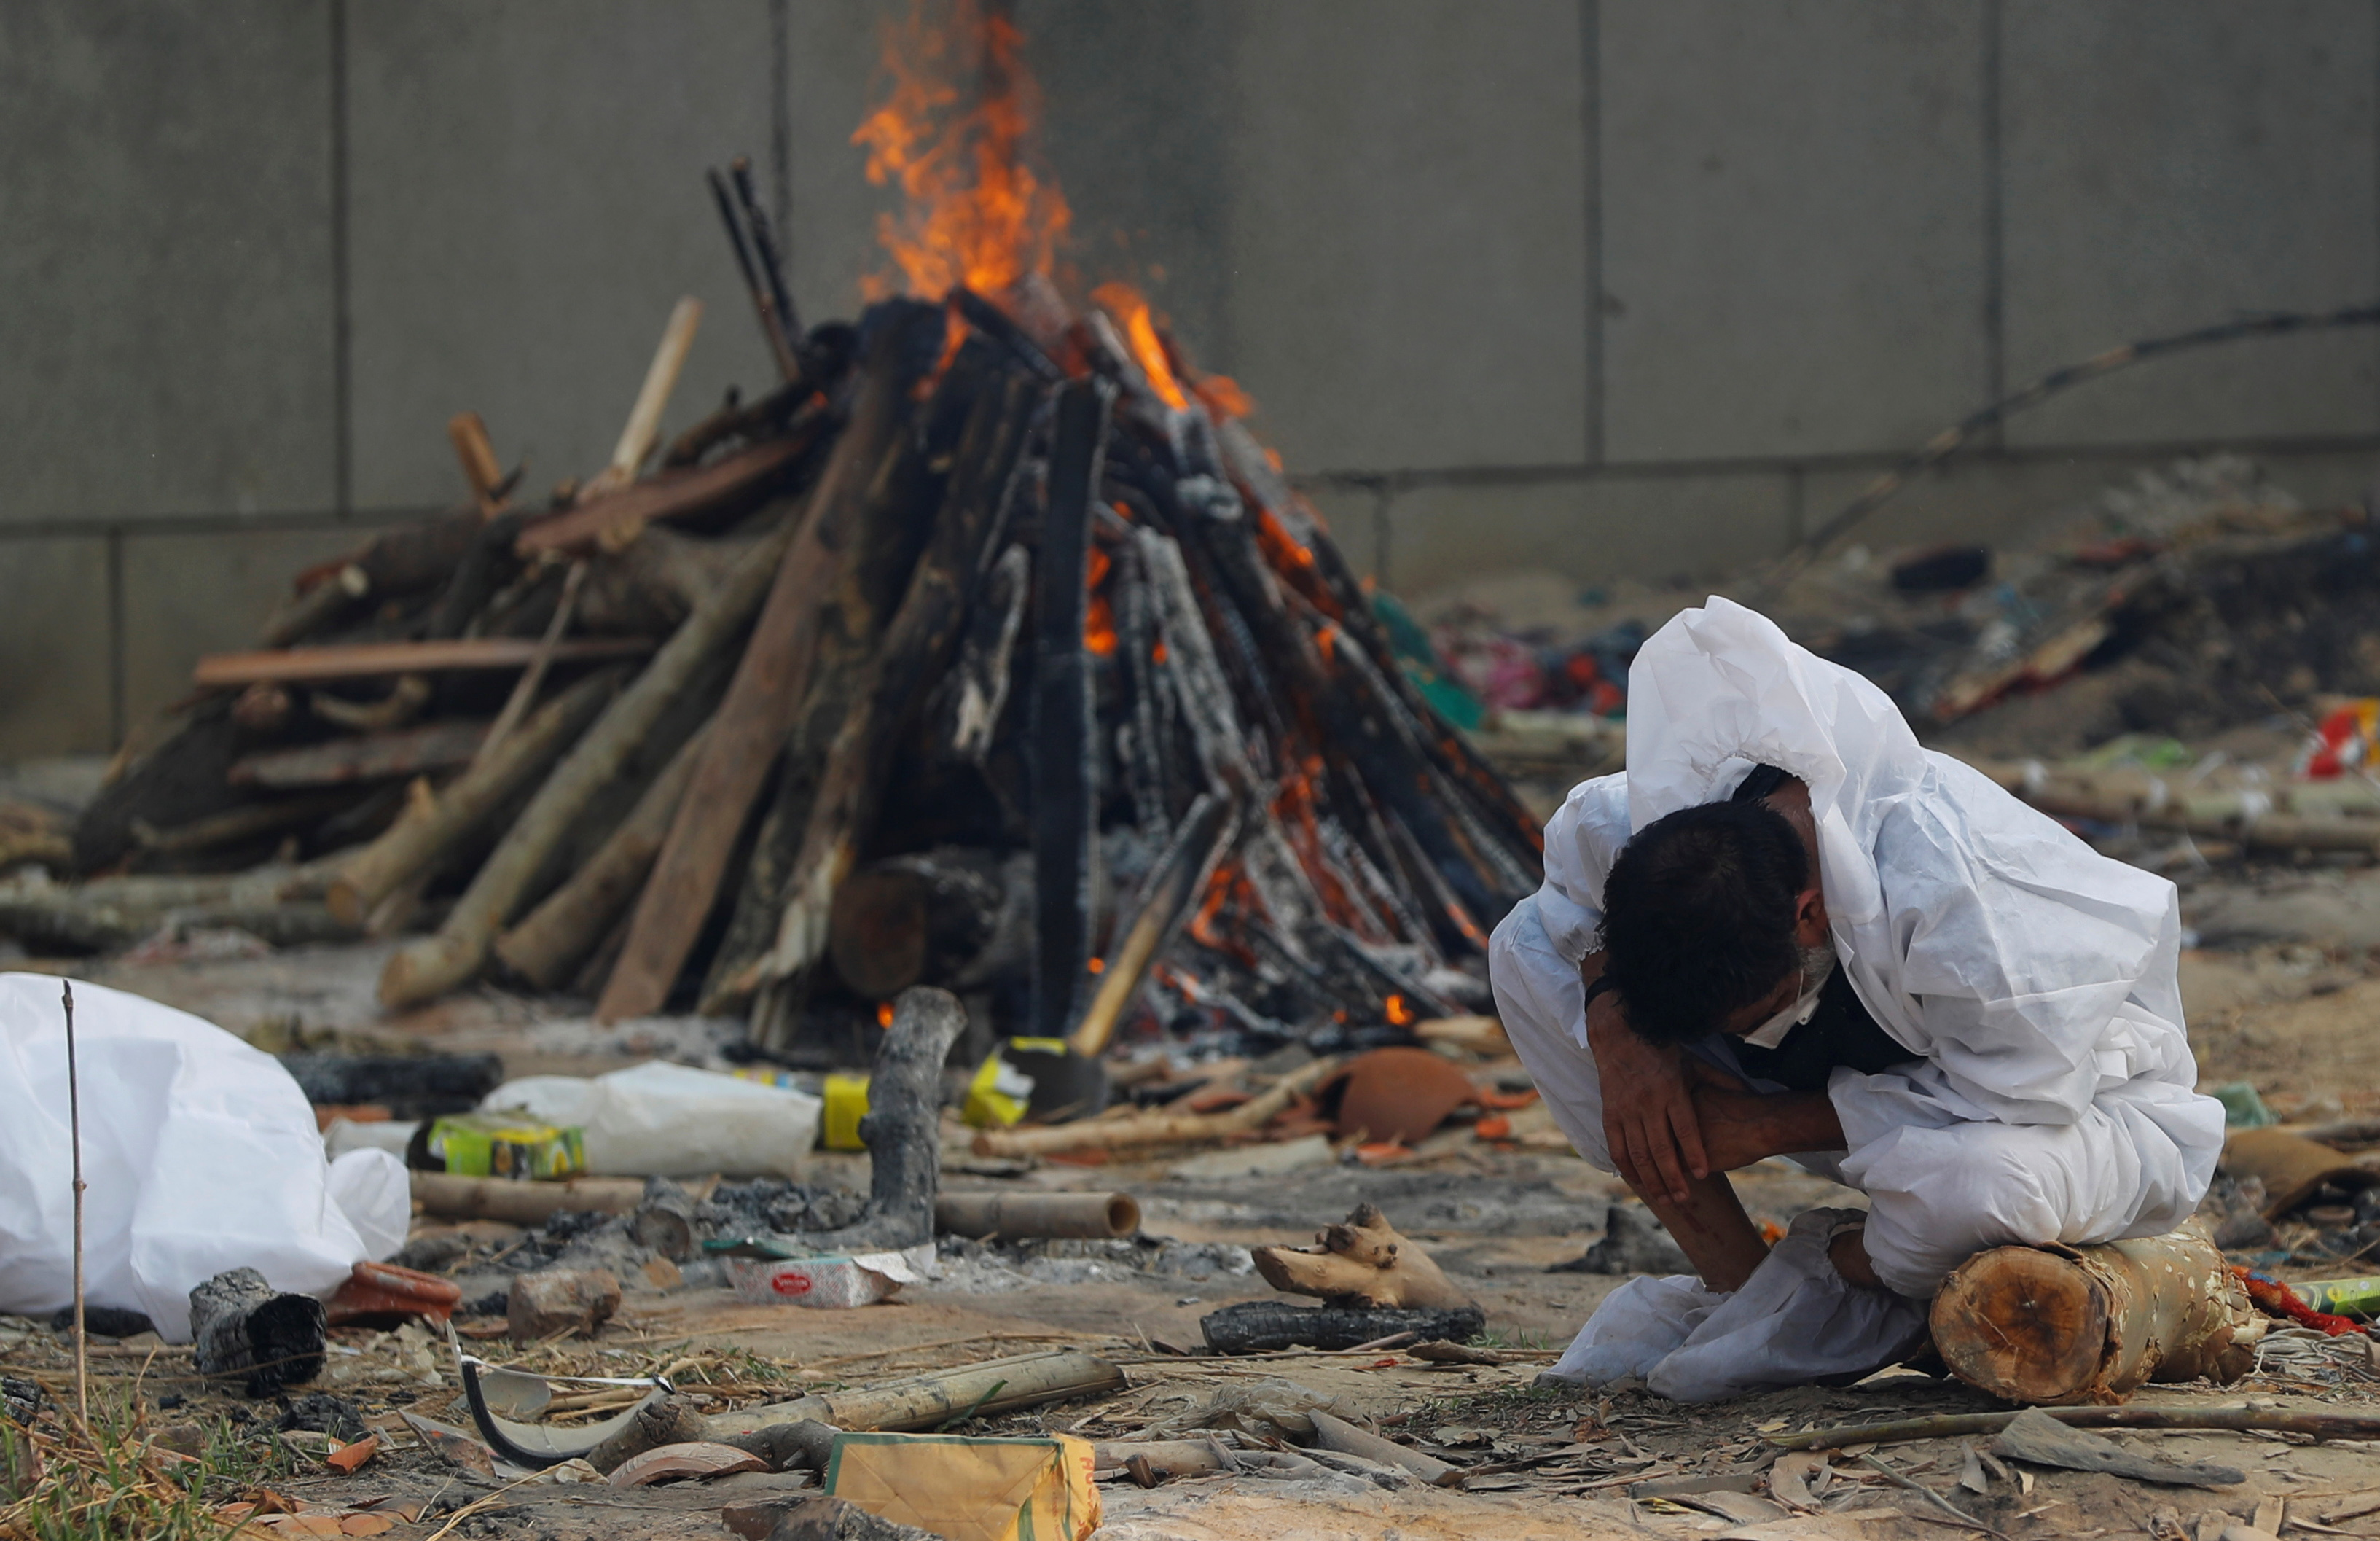 A man mourns as he sits next to the burning pyre of a relative, who died from the coronavirus disease (COVID-19), during his cremation, at a crematorium in New Delhi, India May 5, 2021. REUTERS/Adnan Abidi